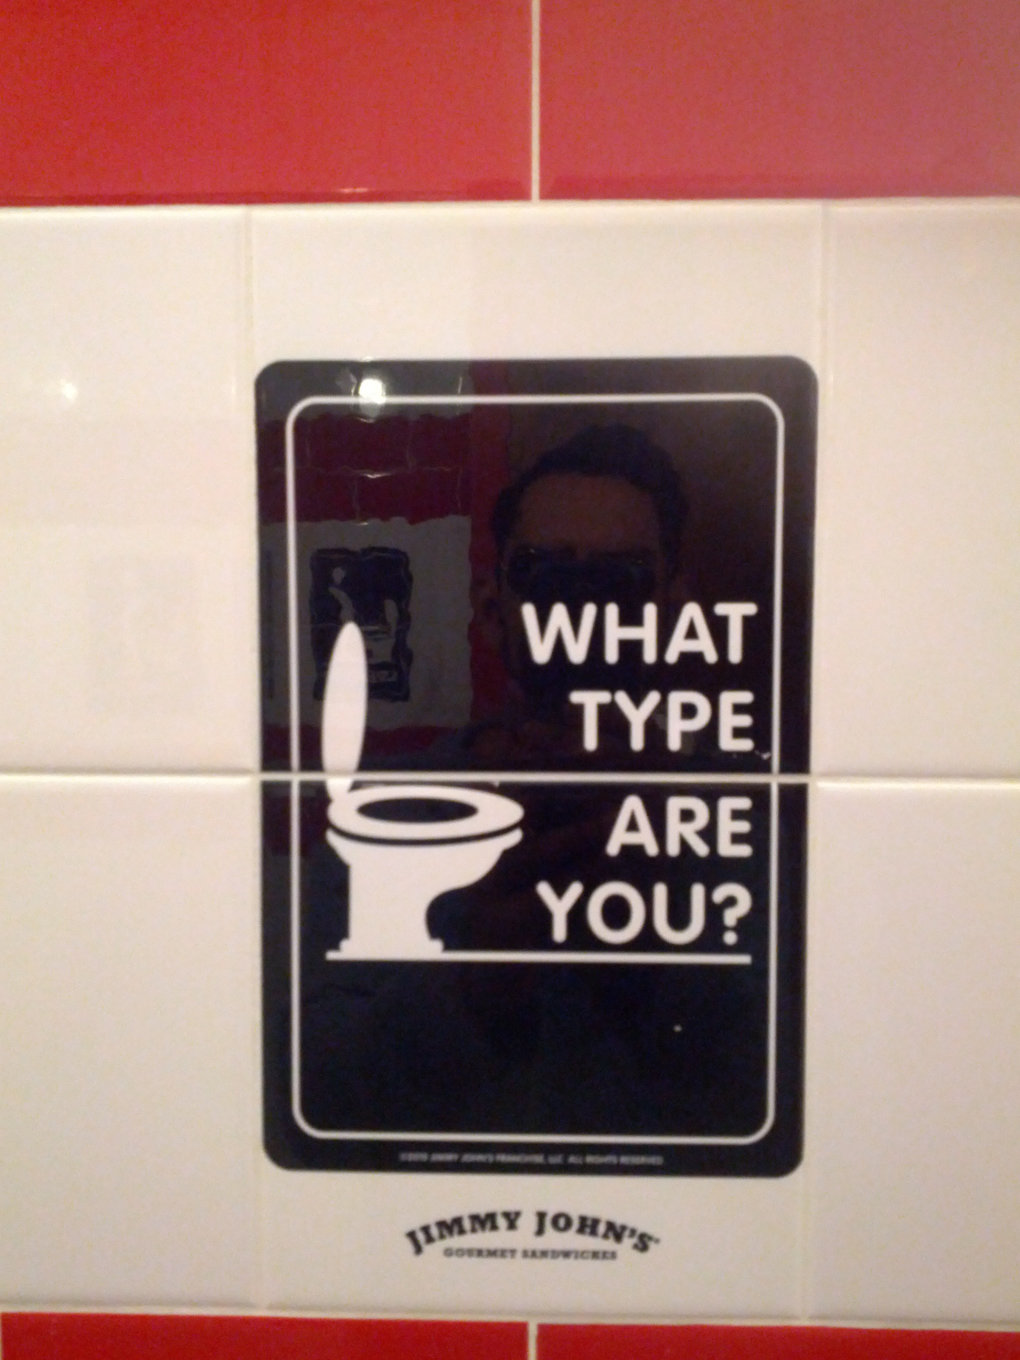 8w6dvln - which type of restroom user are you?